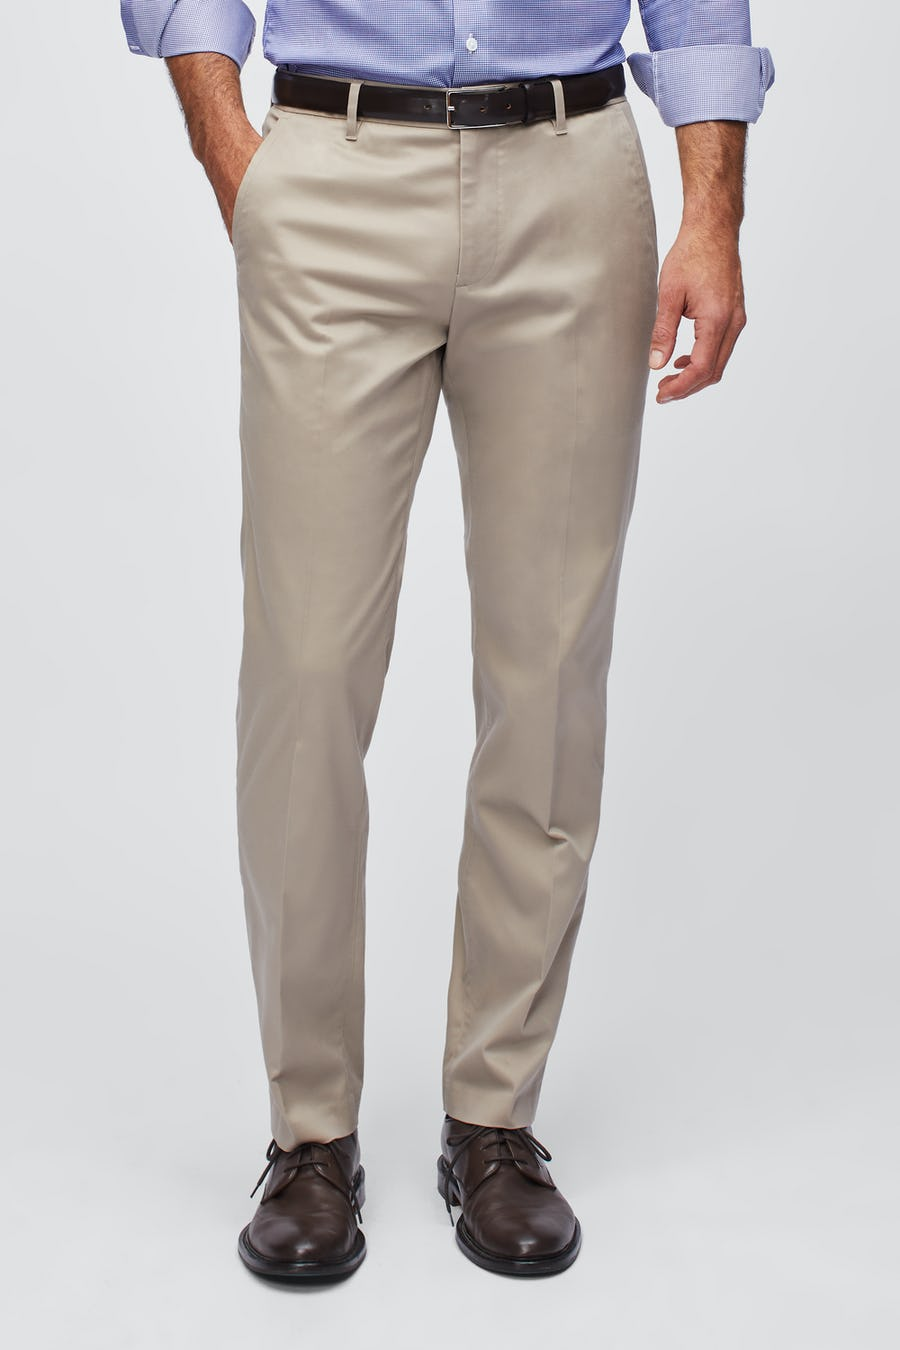 BONOBOS - Stretch Weekday Warrior Dress Pants, Khaki